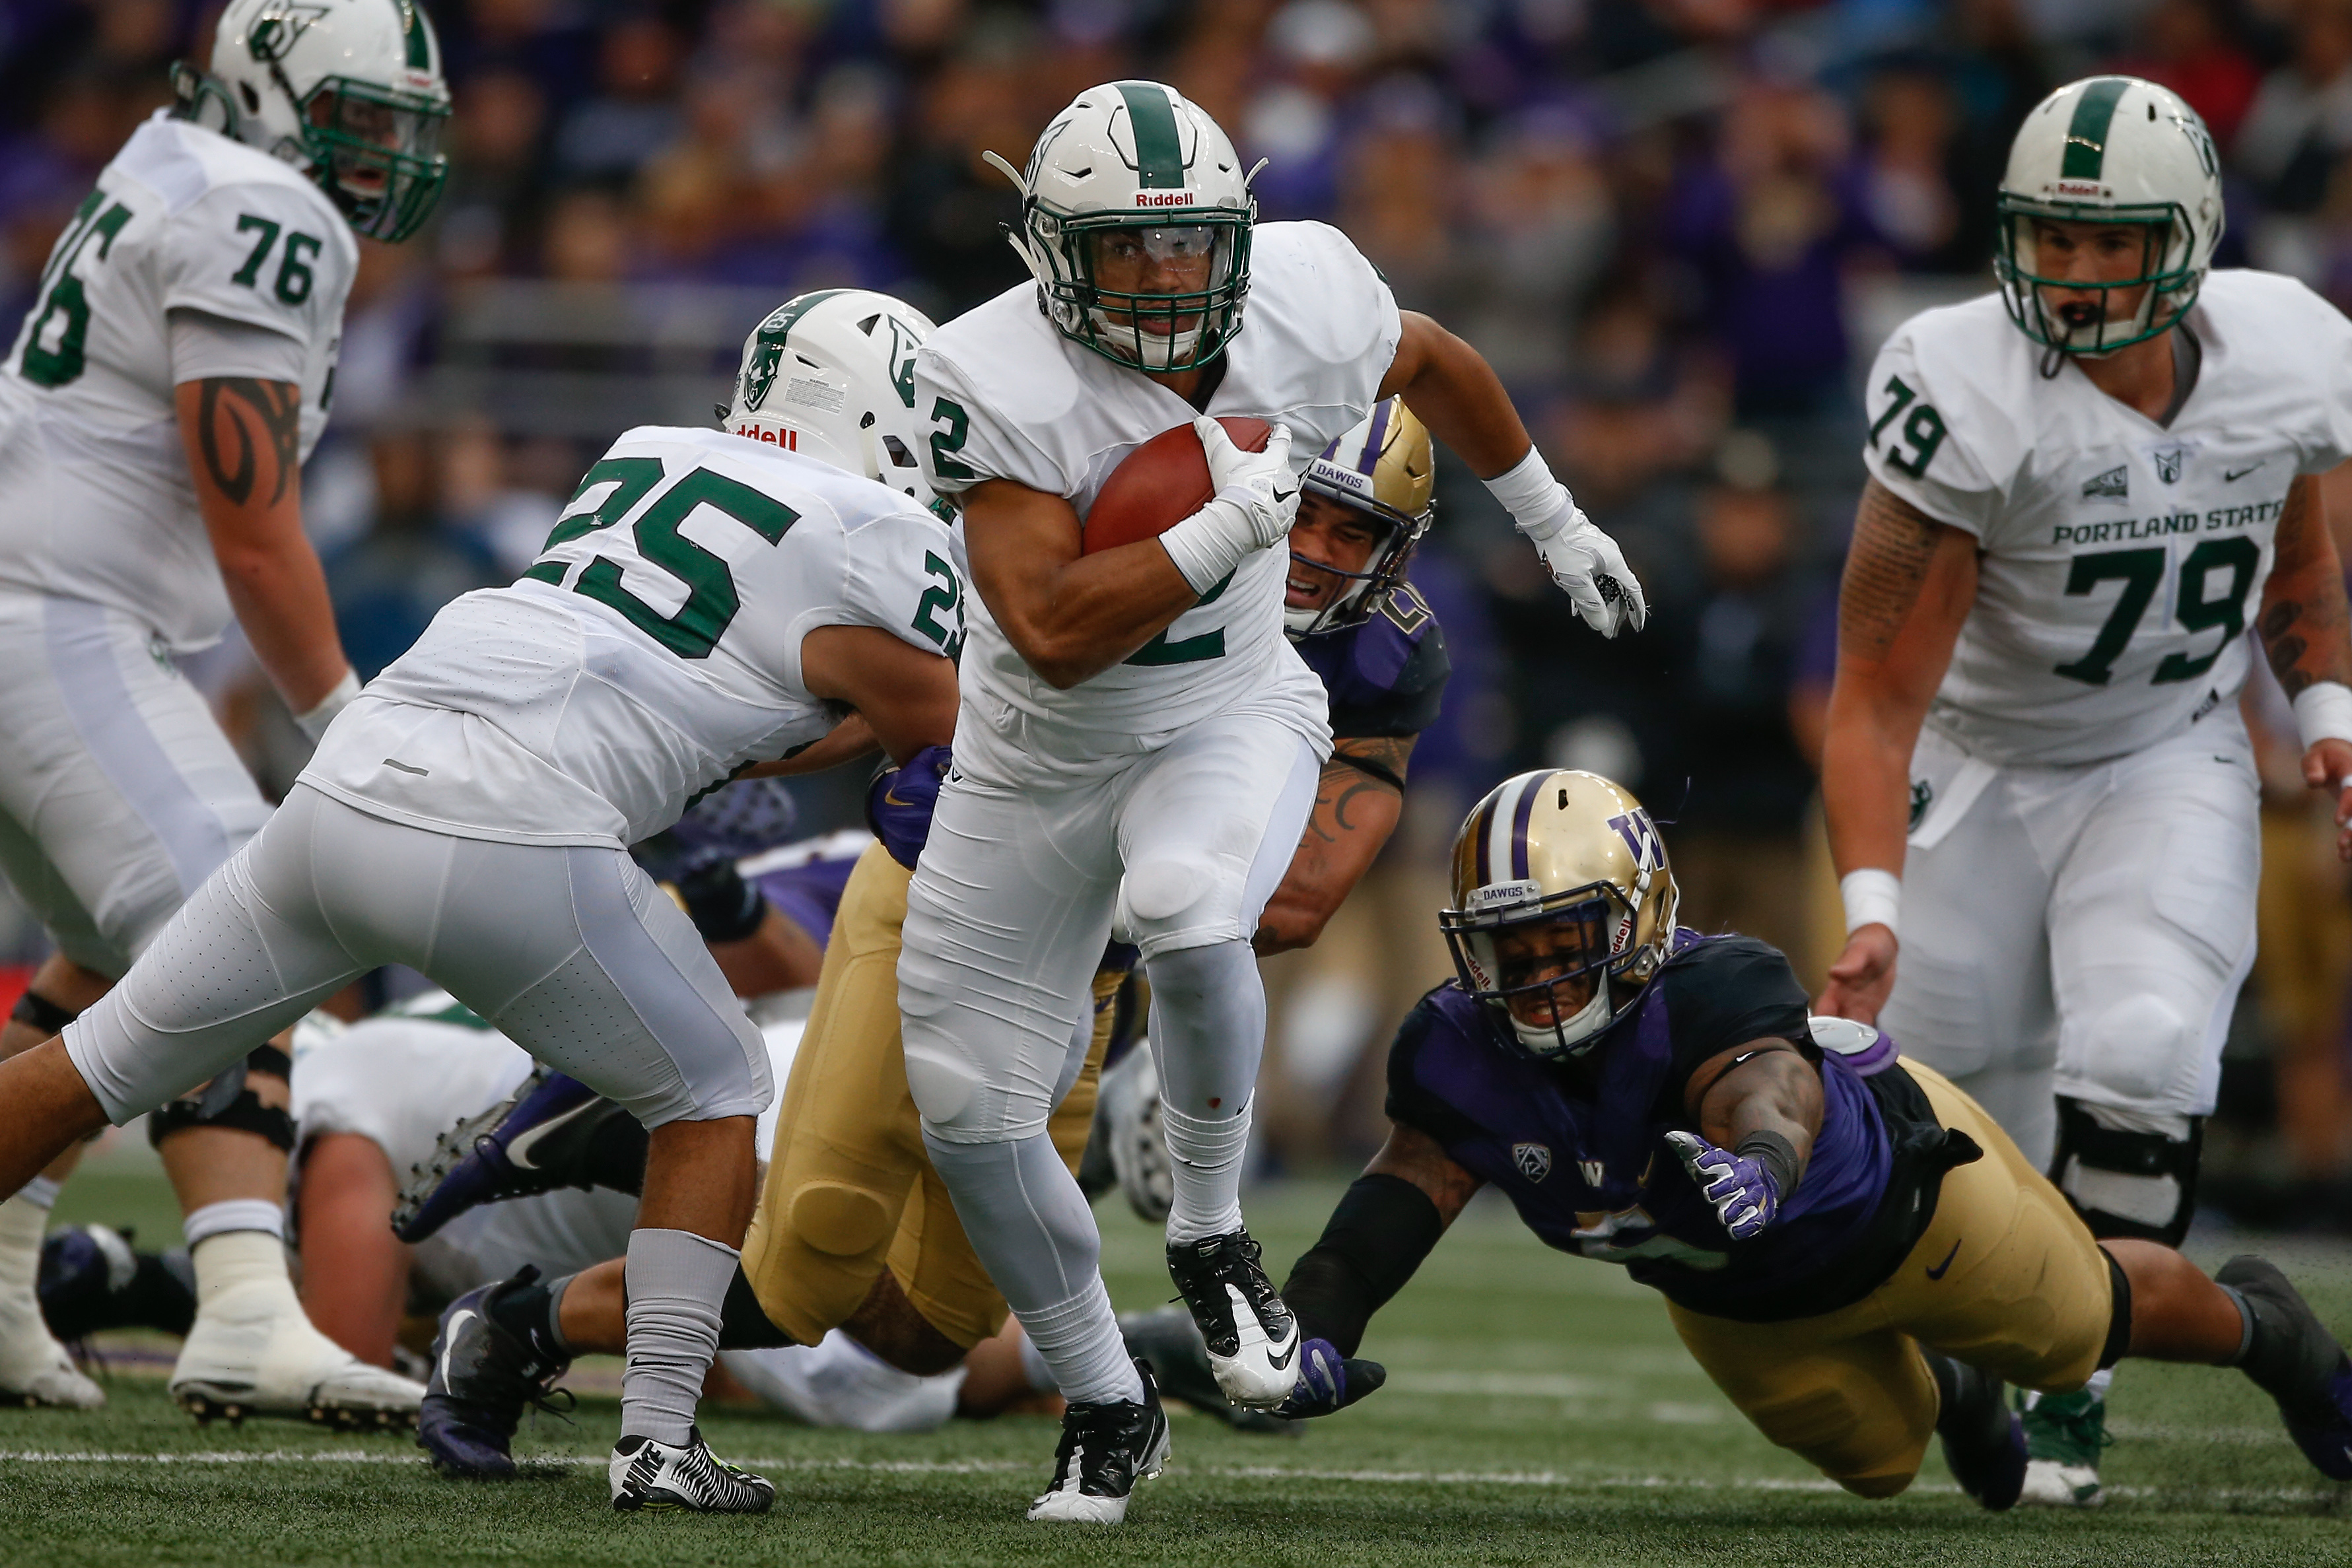 607365802-portland-state-v-washington.jpg